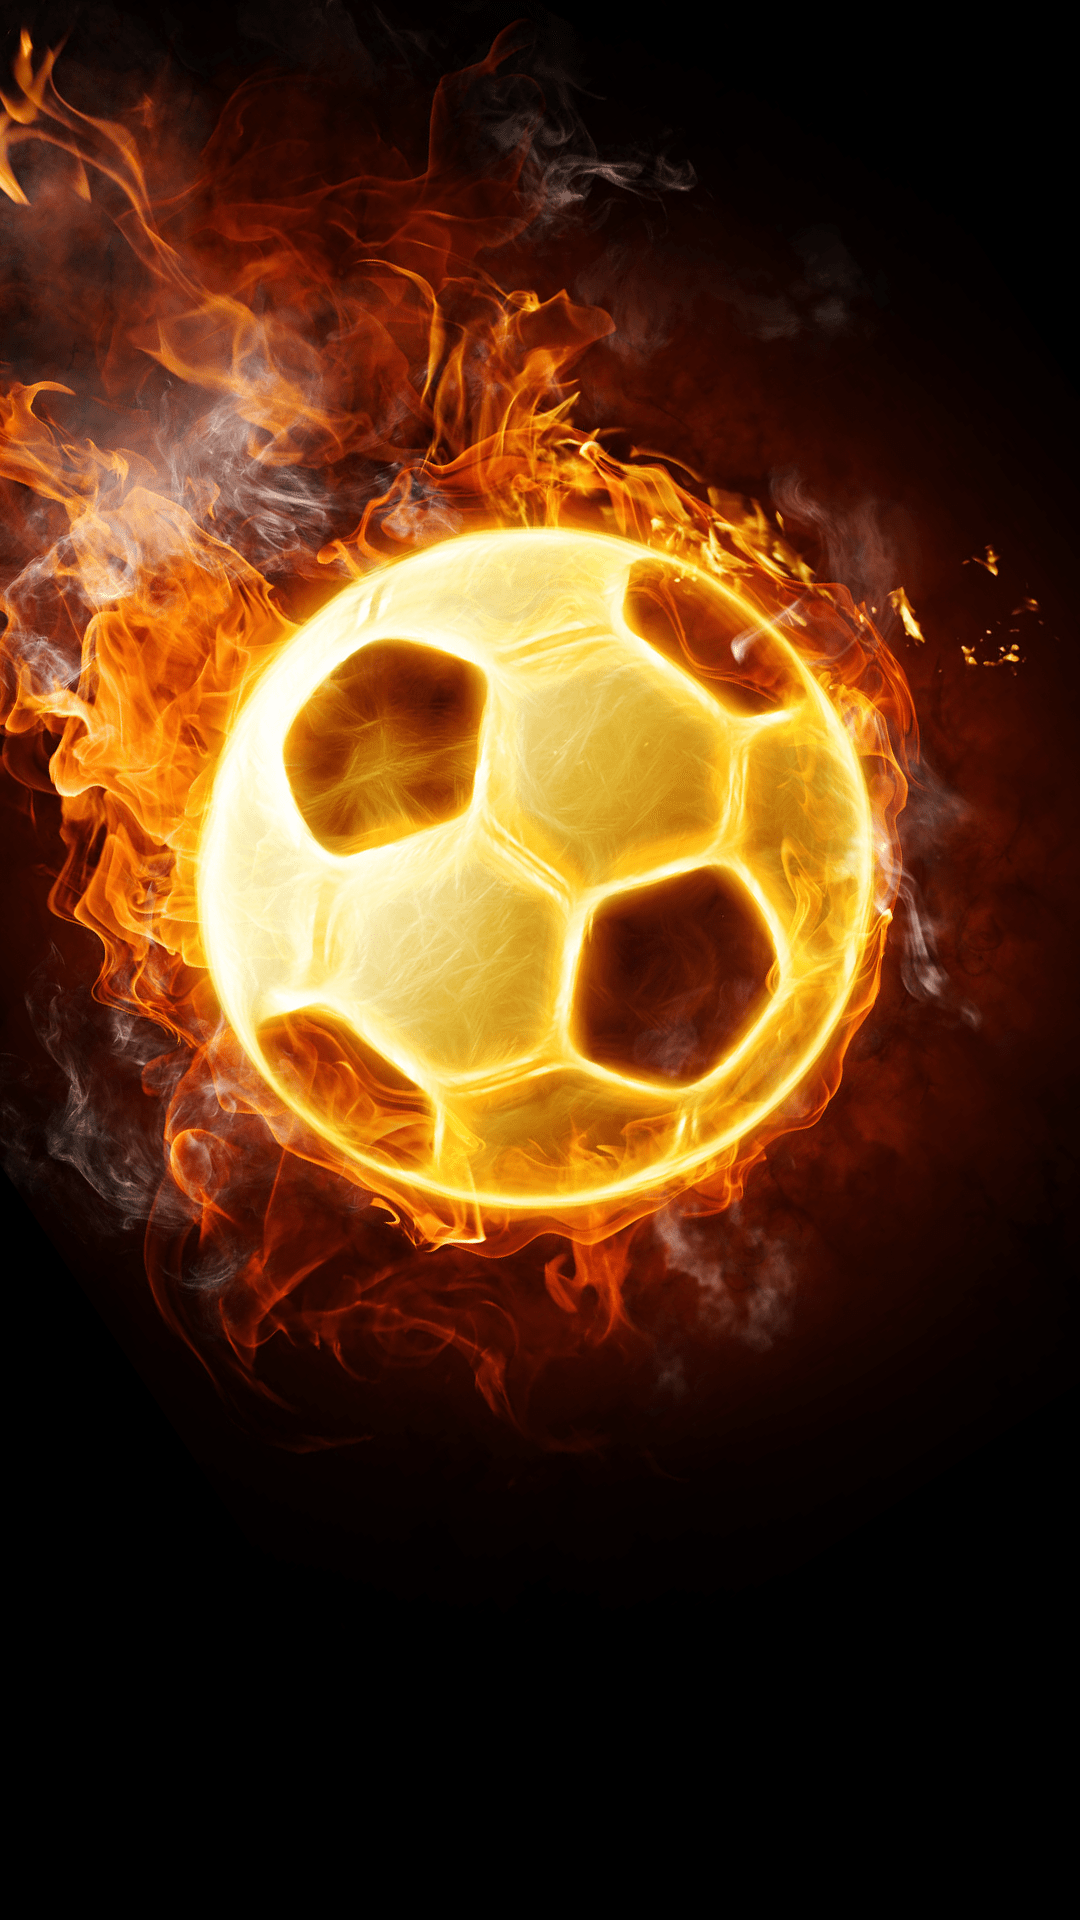 Iphone X Full Screen Wallpaper Ultra Hd Flaming Football Wallpaper For Your Mobile Phone